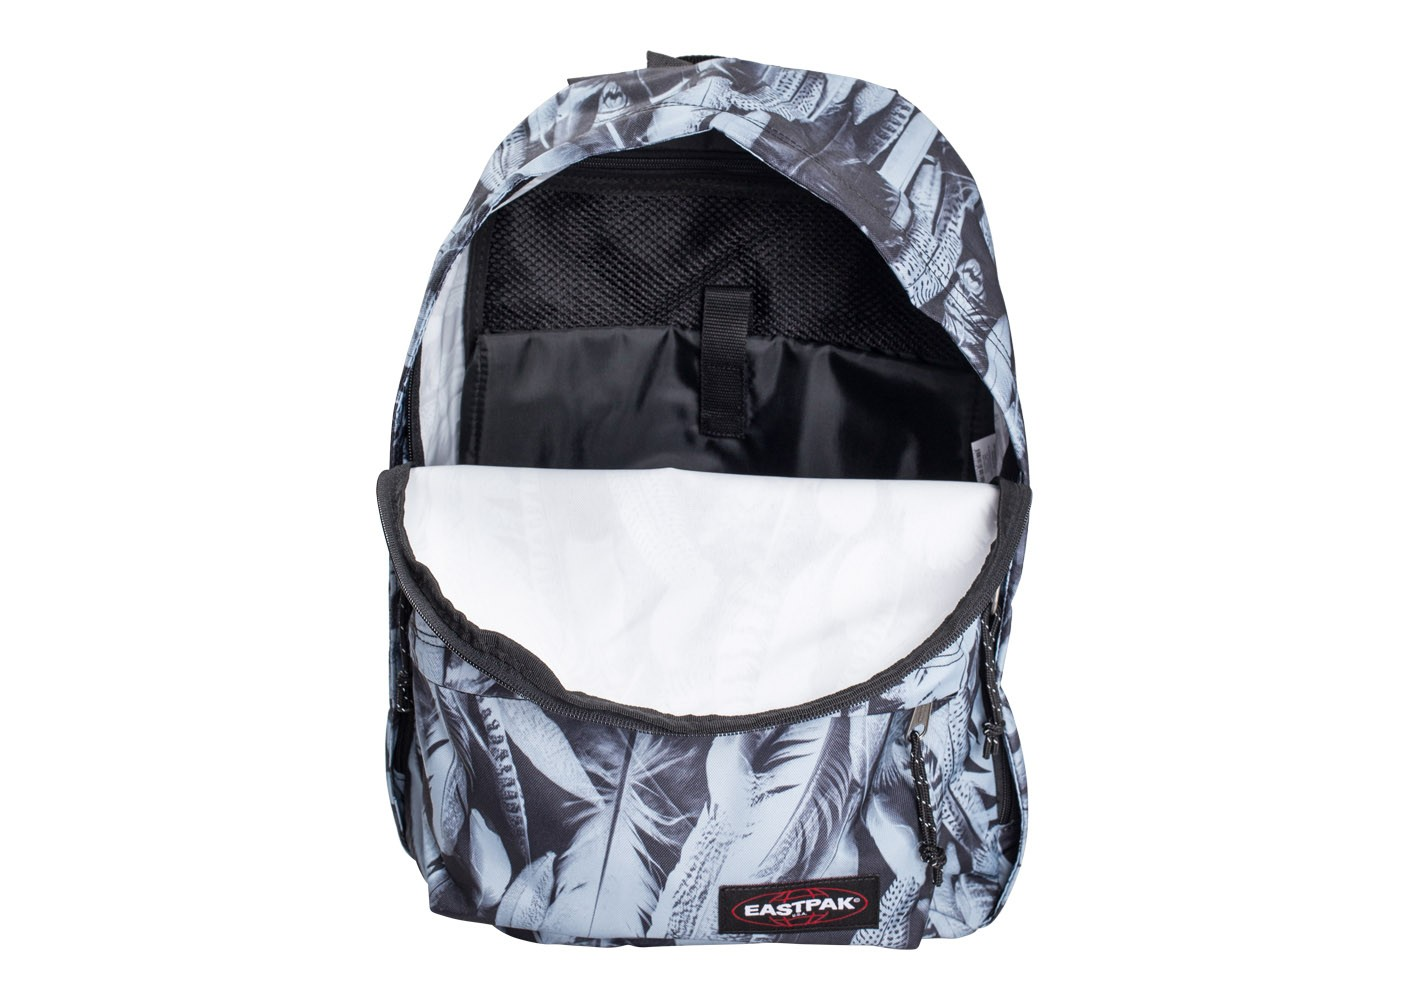 Eastpak Sac a Dos Out Of Office Plume Gris